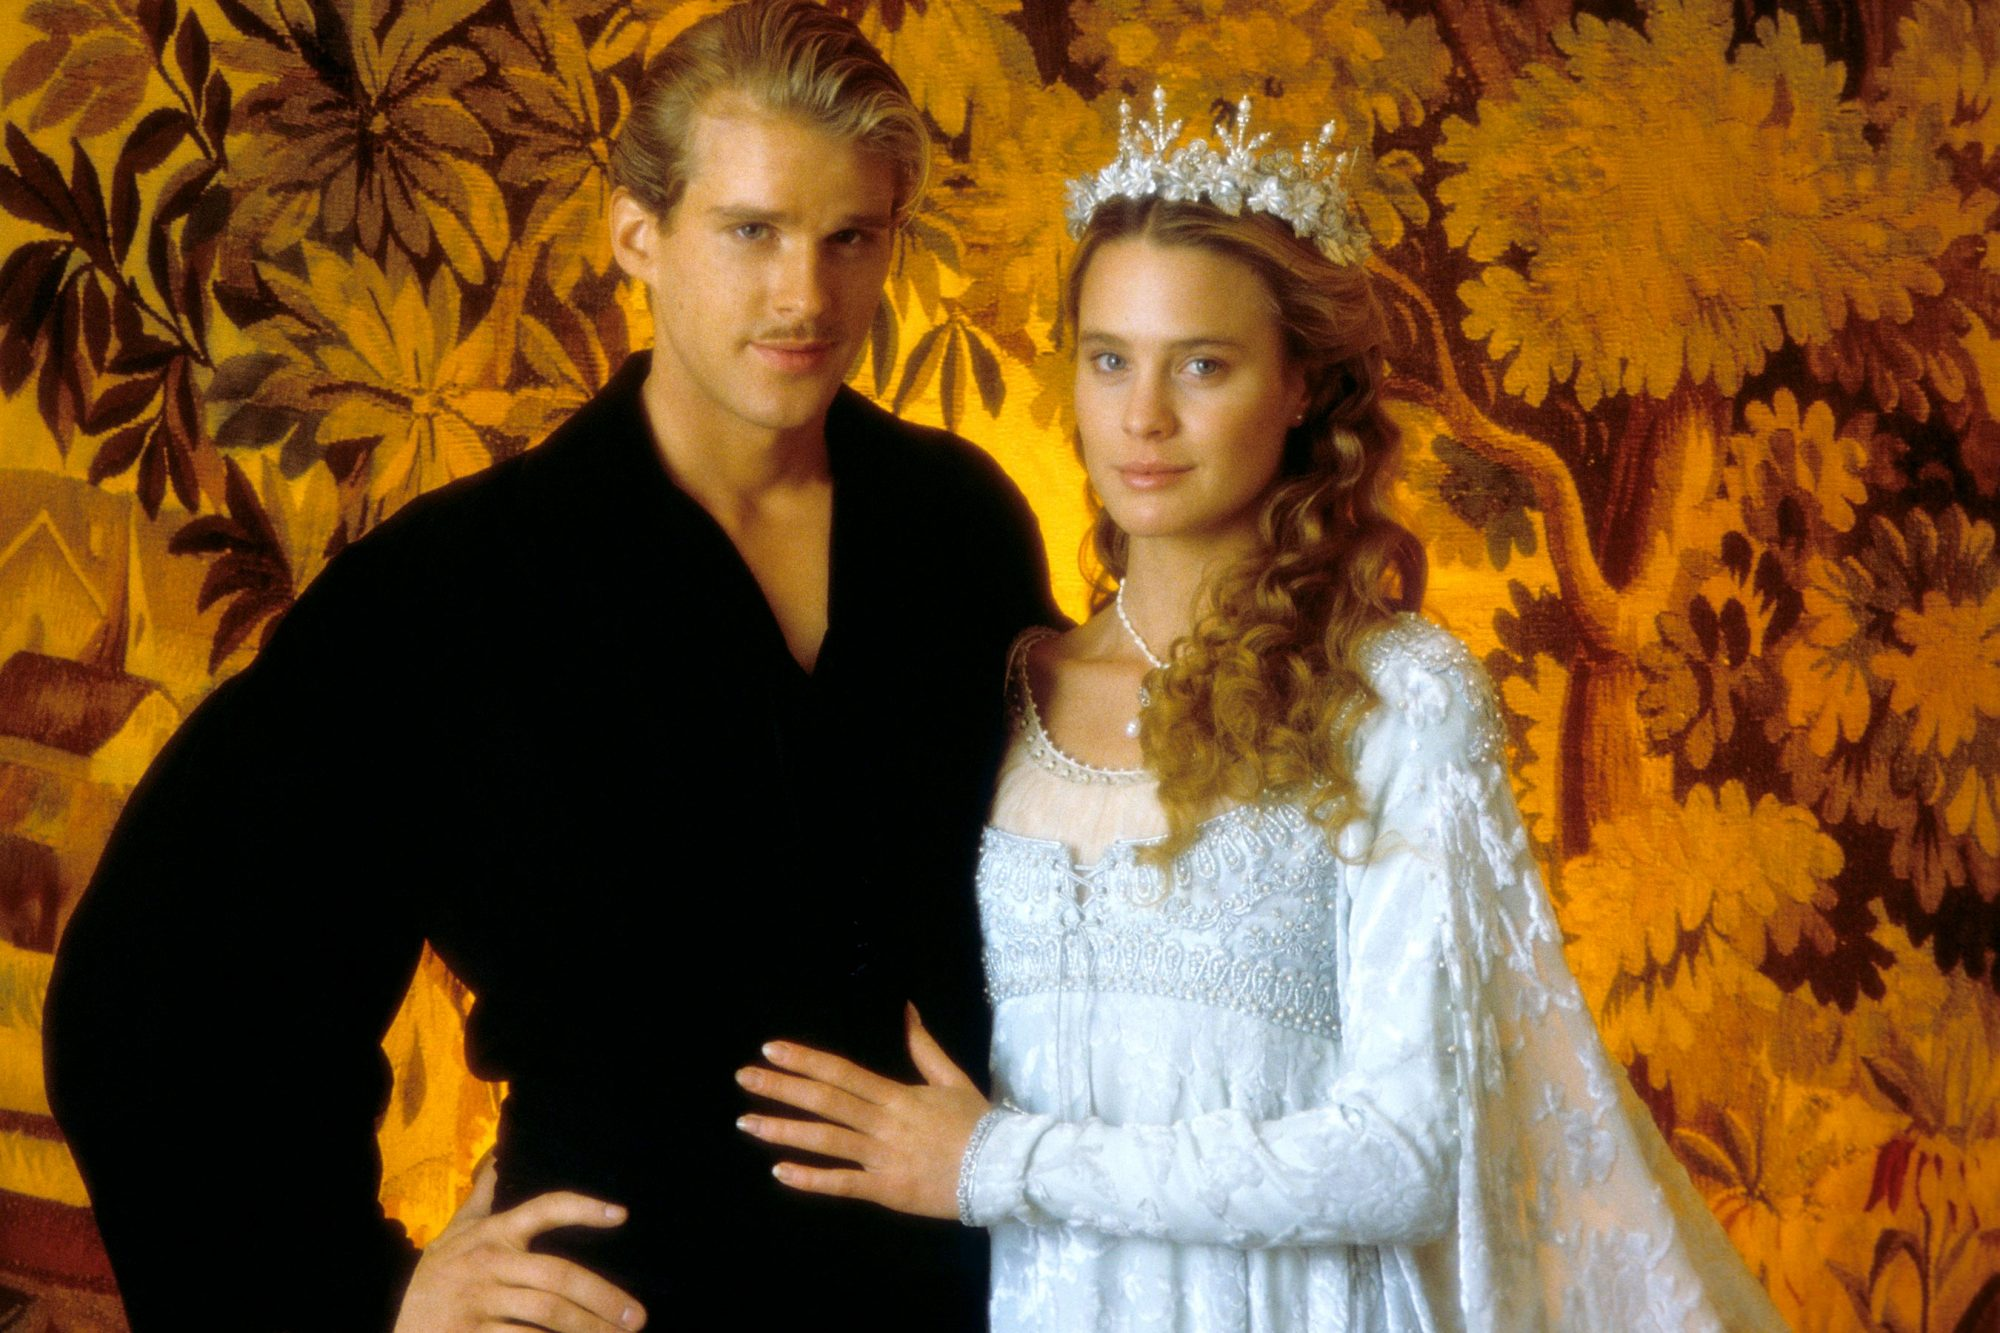 THE PRINCESS BRIDE, Cary Elwes, Robin Wright, 1987. TM and Copyright © 20th Century Fox Film Corp. A